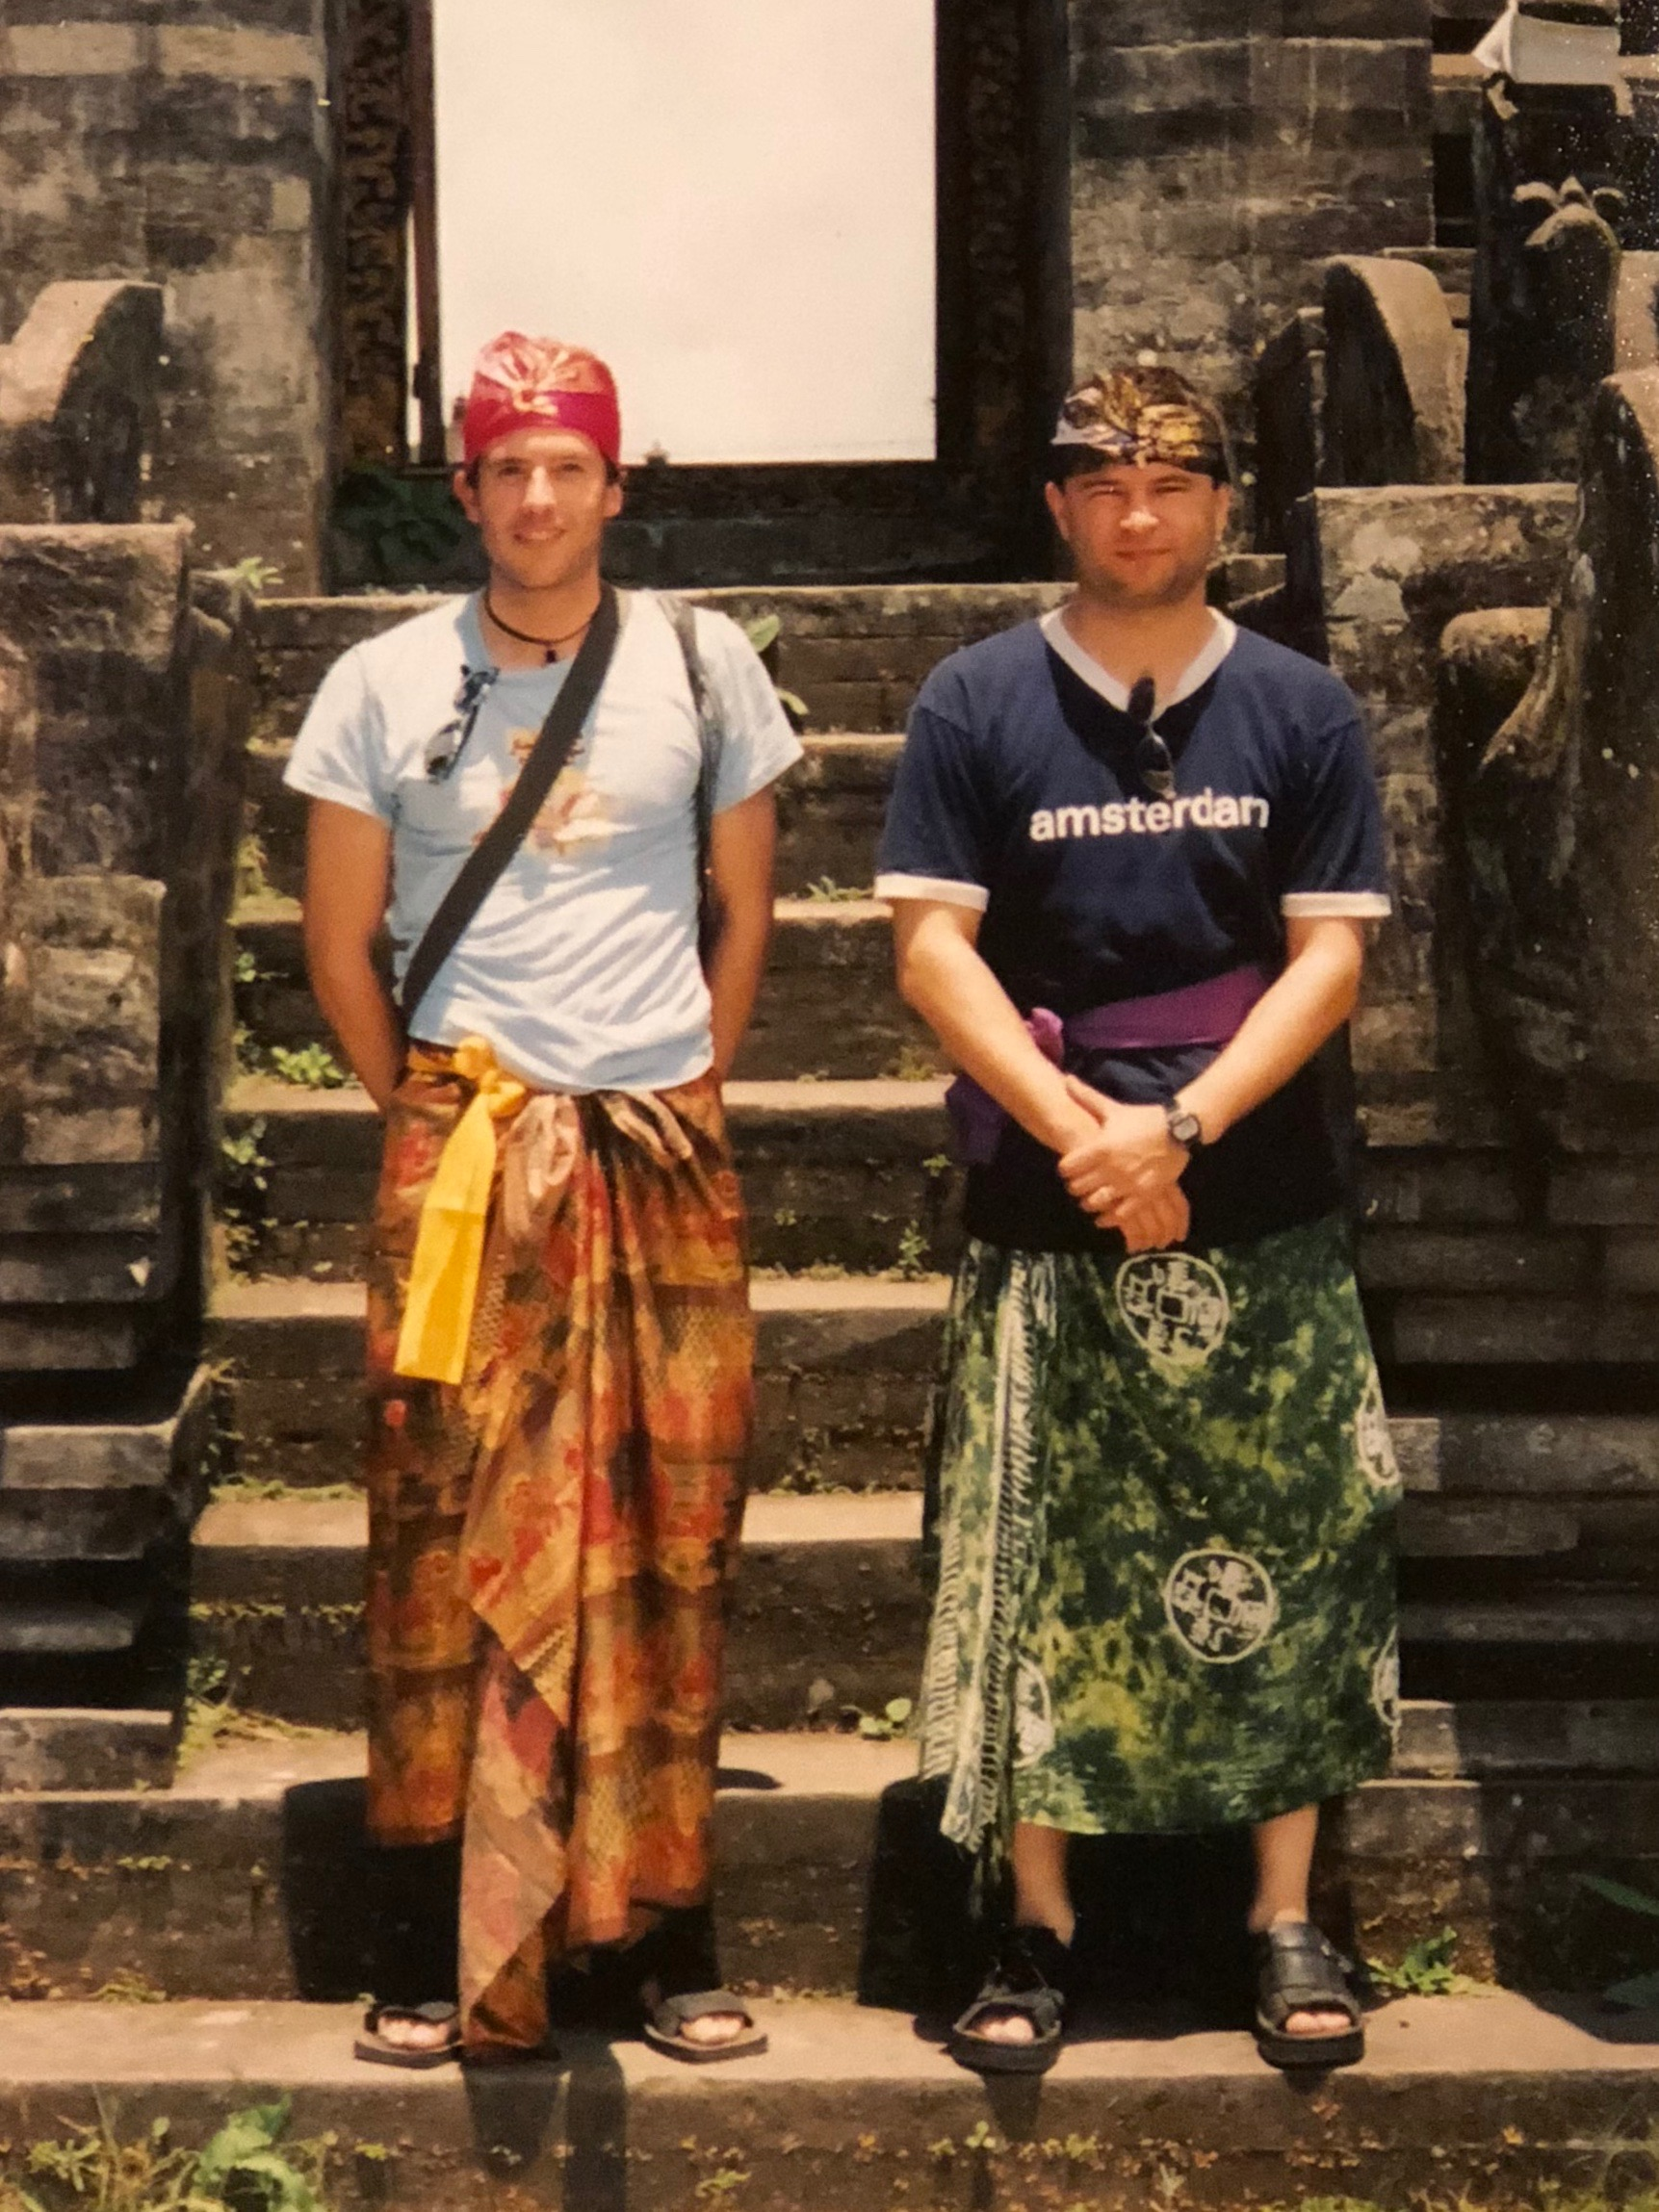 When we visited temples in 2001, there weren't many other tourists, and locals would dress us in sarongs, sashes around our waists and headdresses